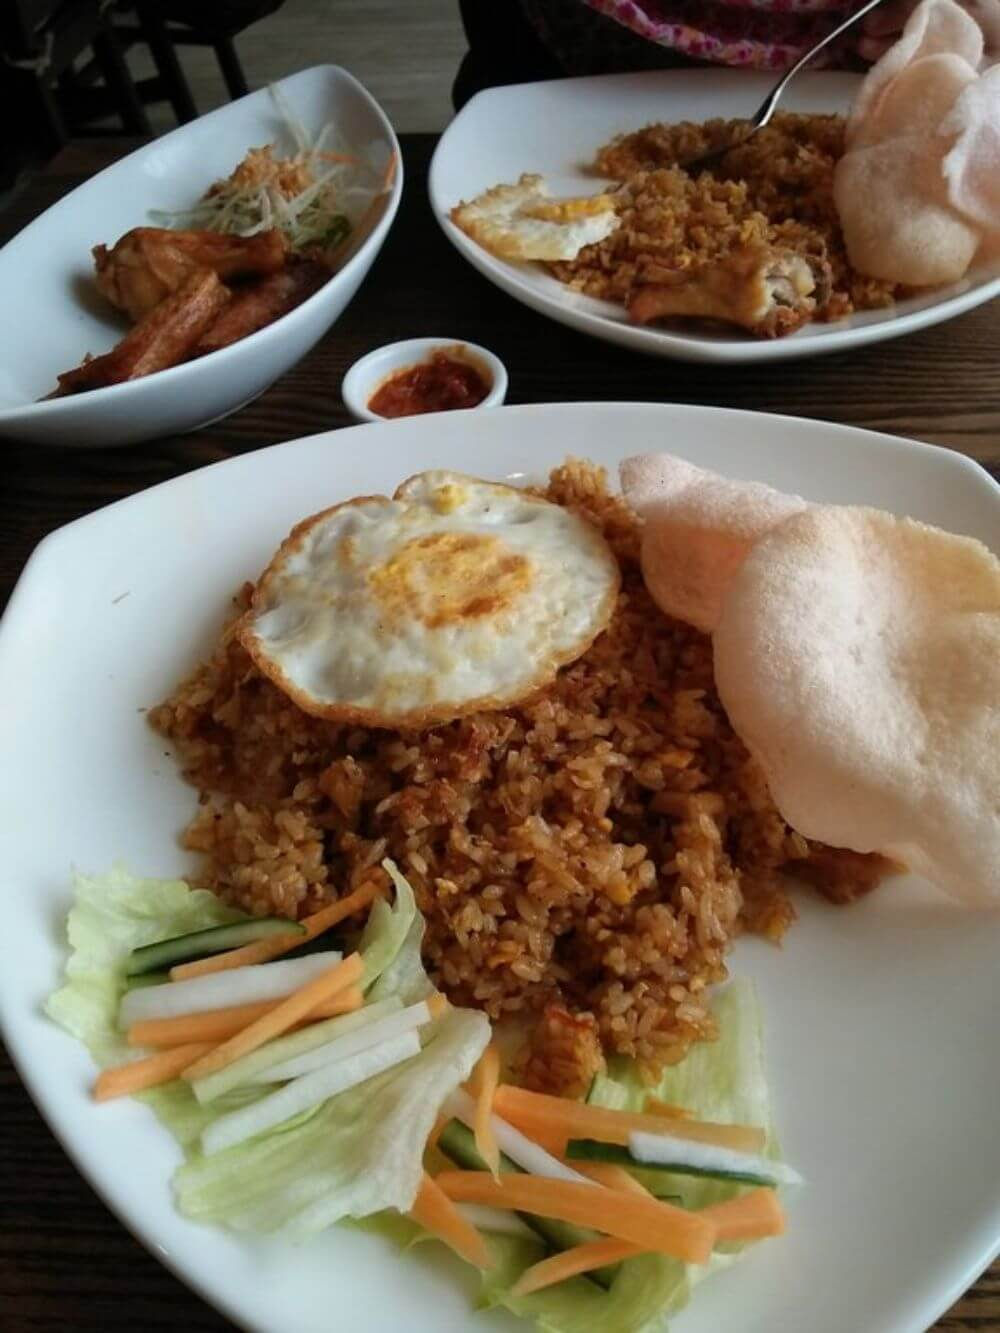 Nasi goreng traditional indonesian food